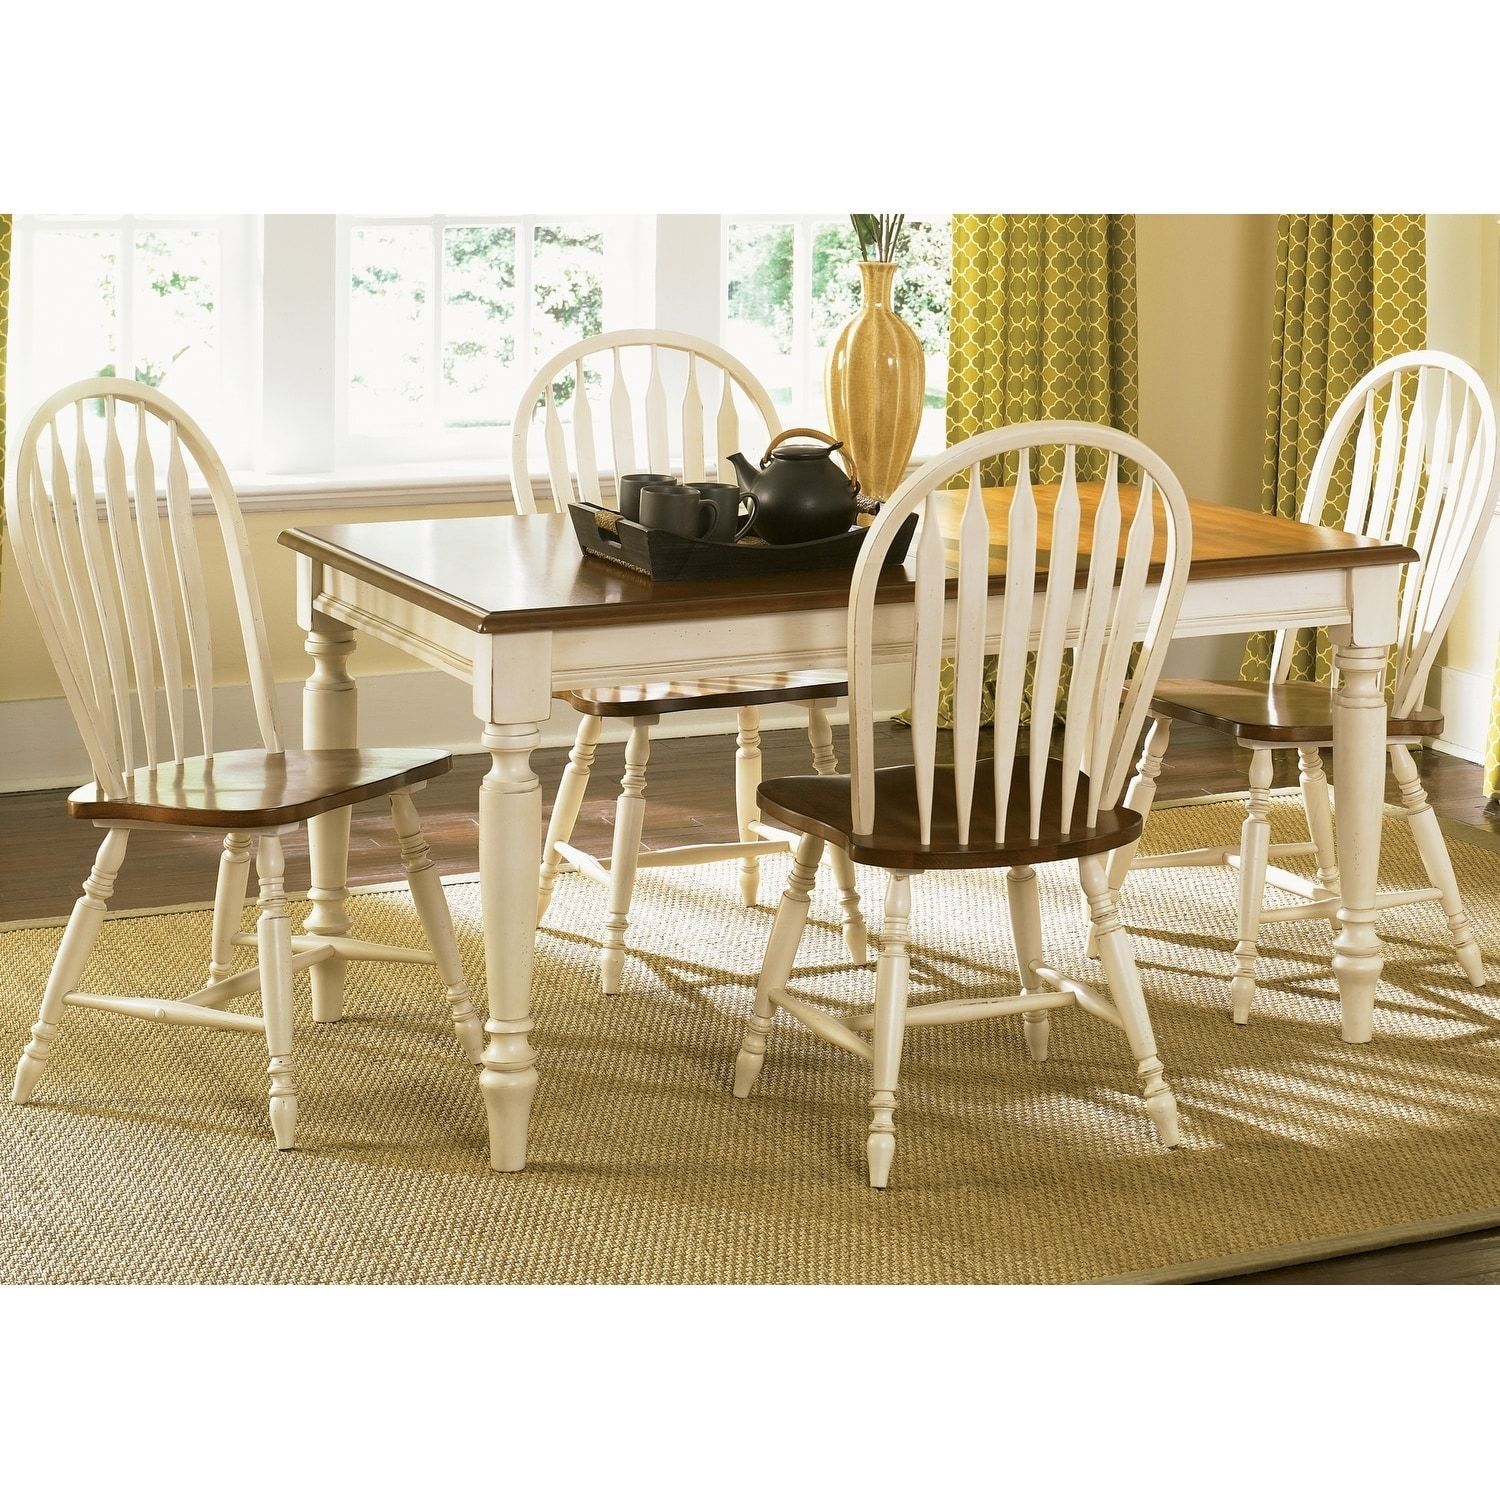 Liberty Low Country White 5 Piece Windsor Back Rectangular Table Dining Set Brown